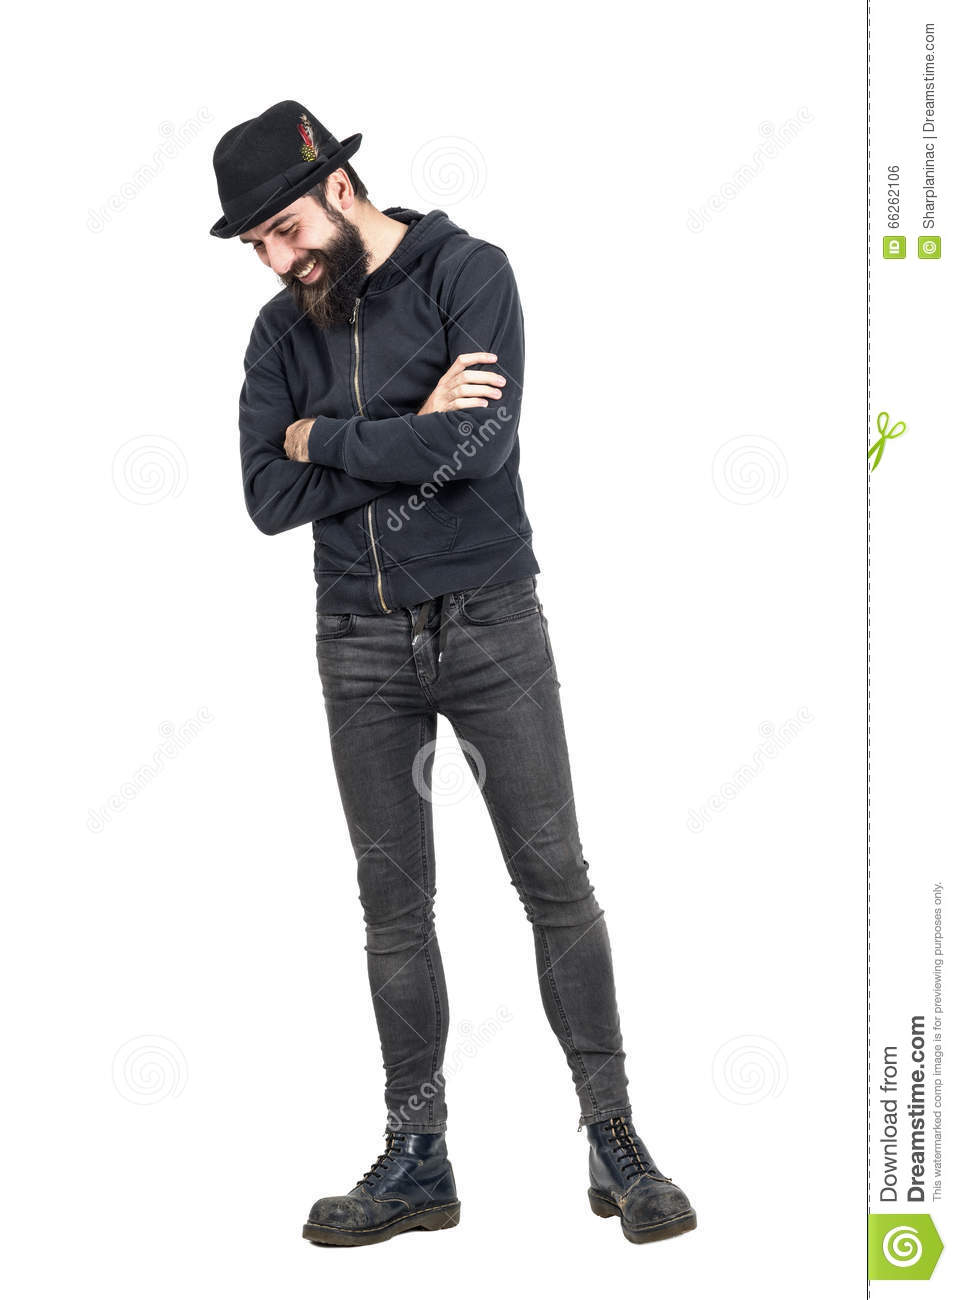 Happy spontaneous laughing hipster with fedora hat looking down